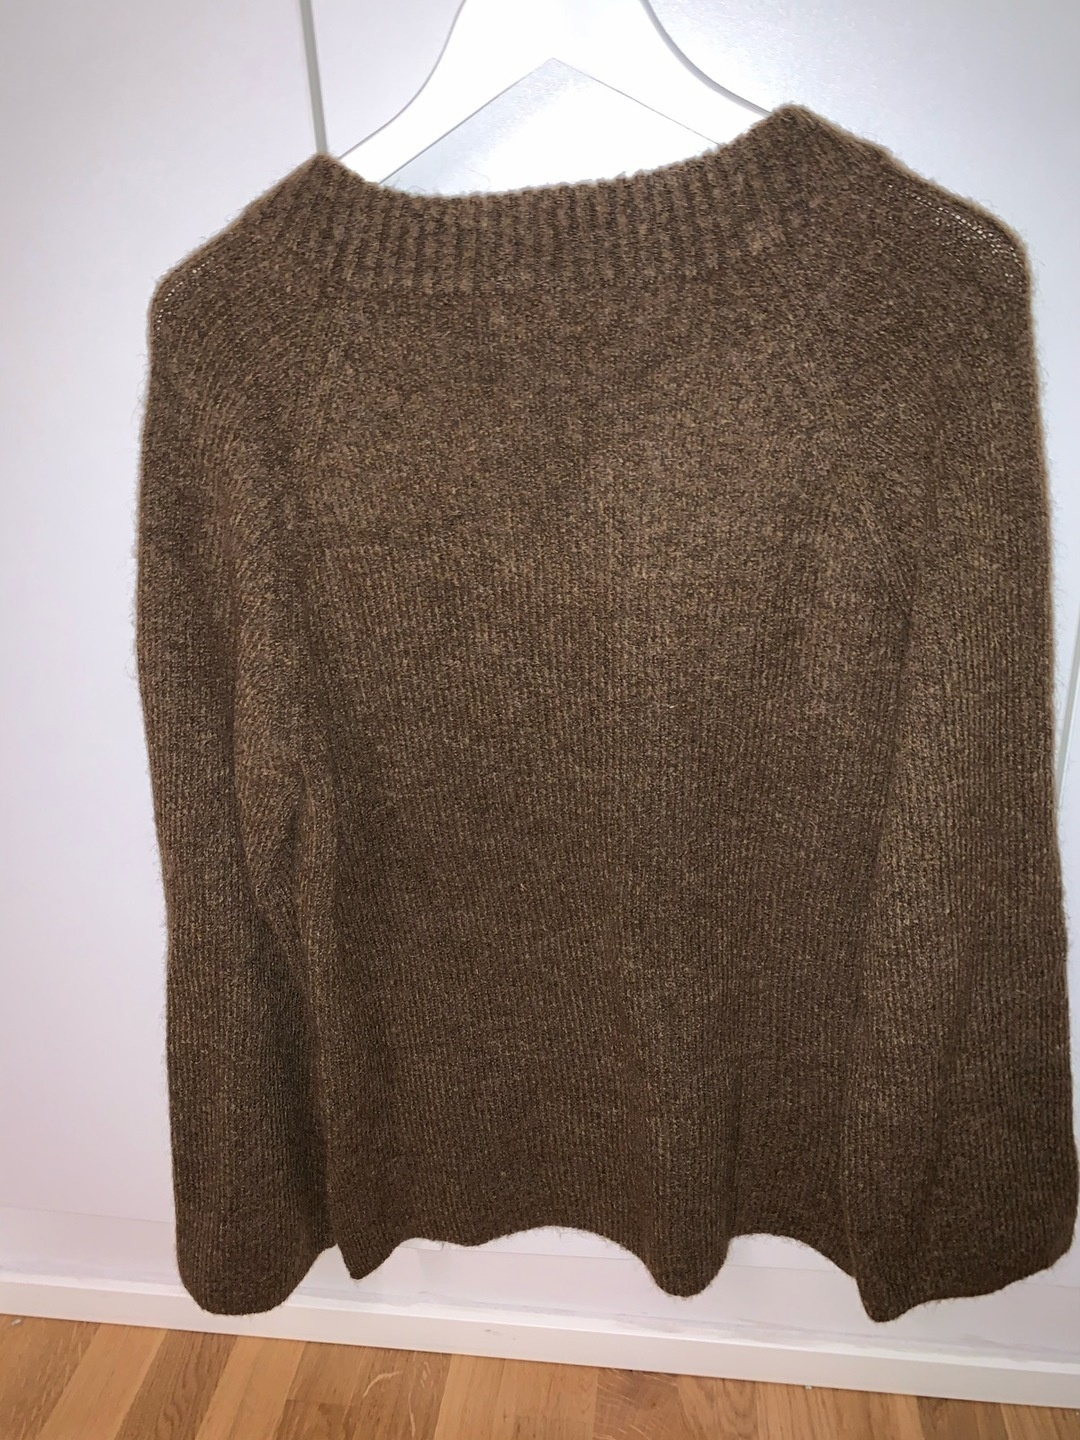 Women's jumpers & cardigans - GINA TRICOT photo 3